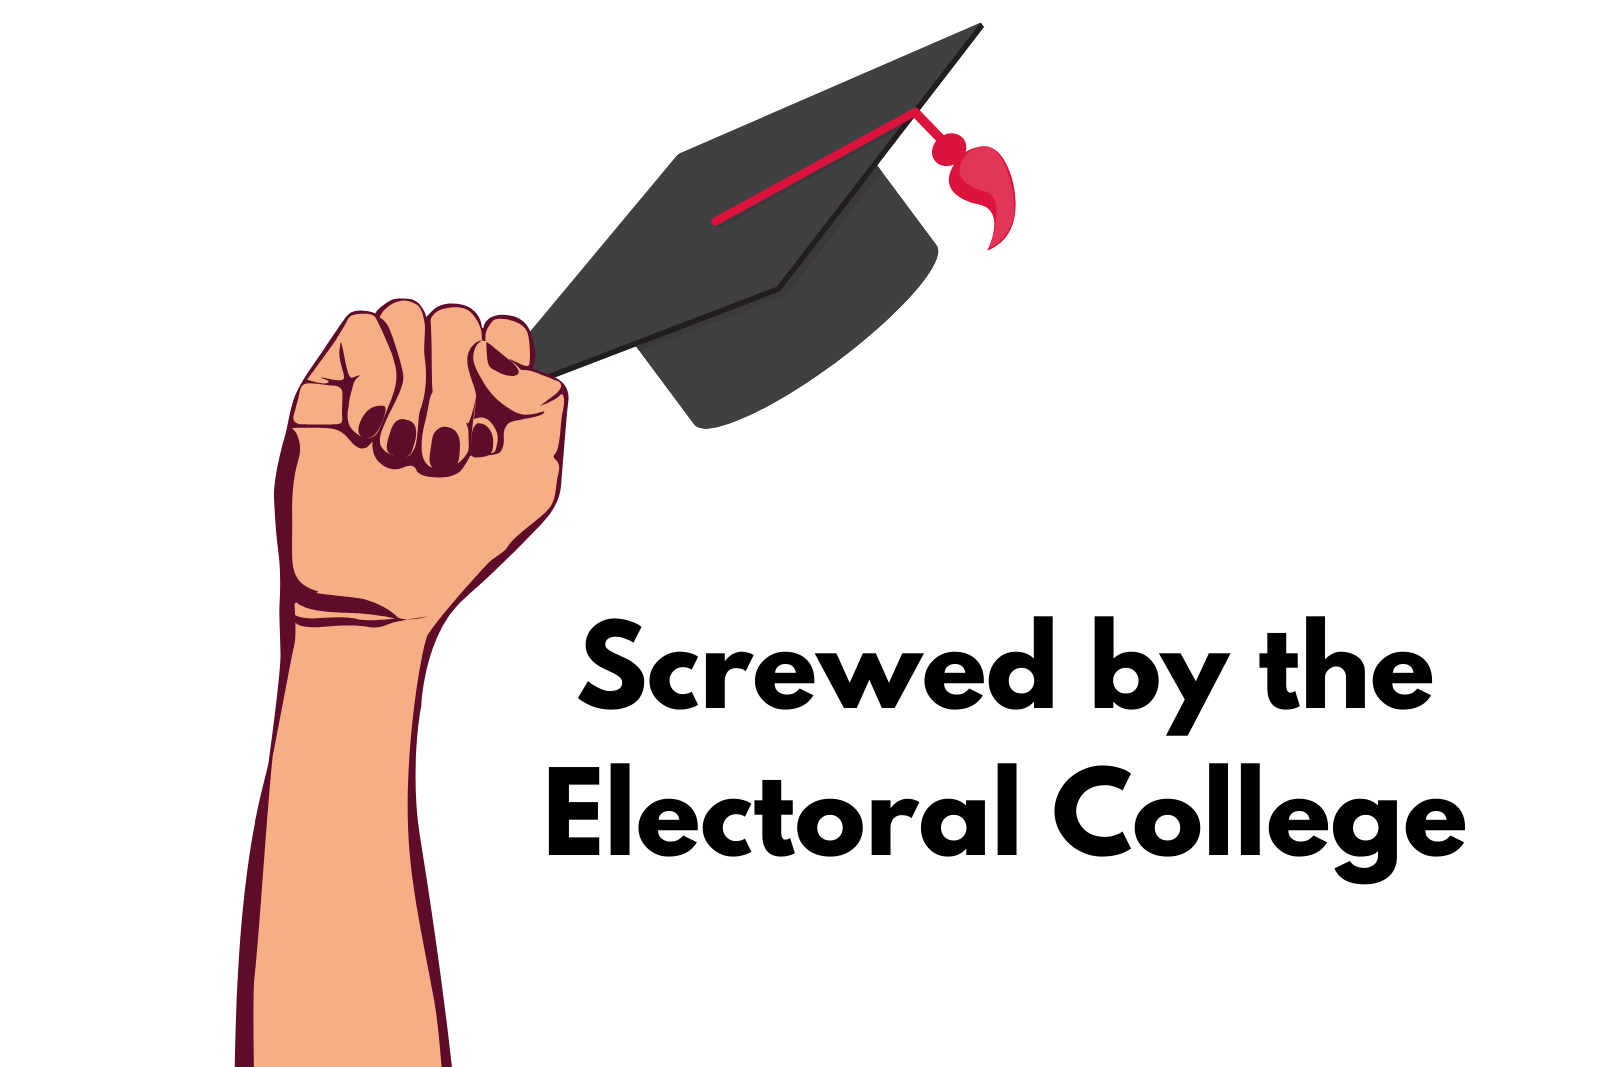 Ep 7. Screwed By the Electoral College